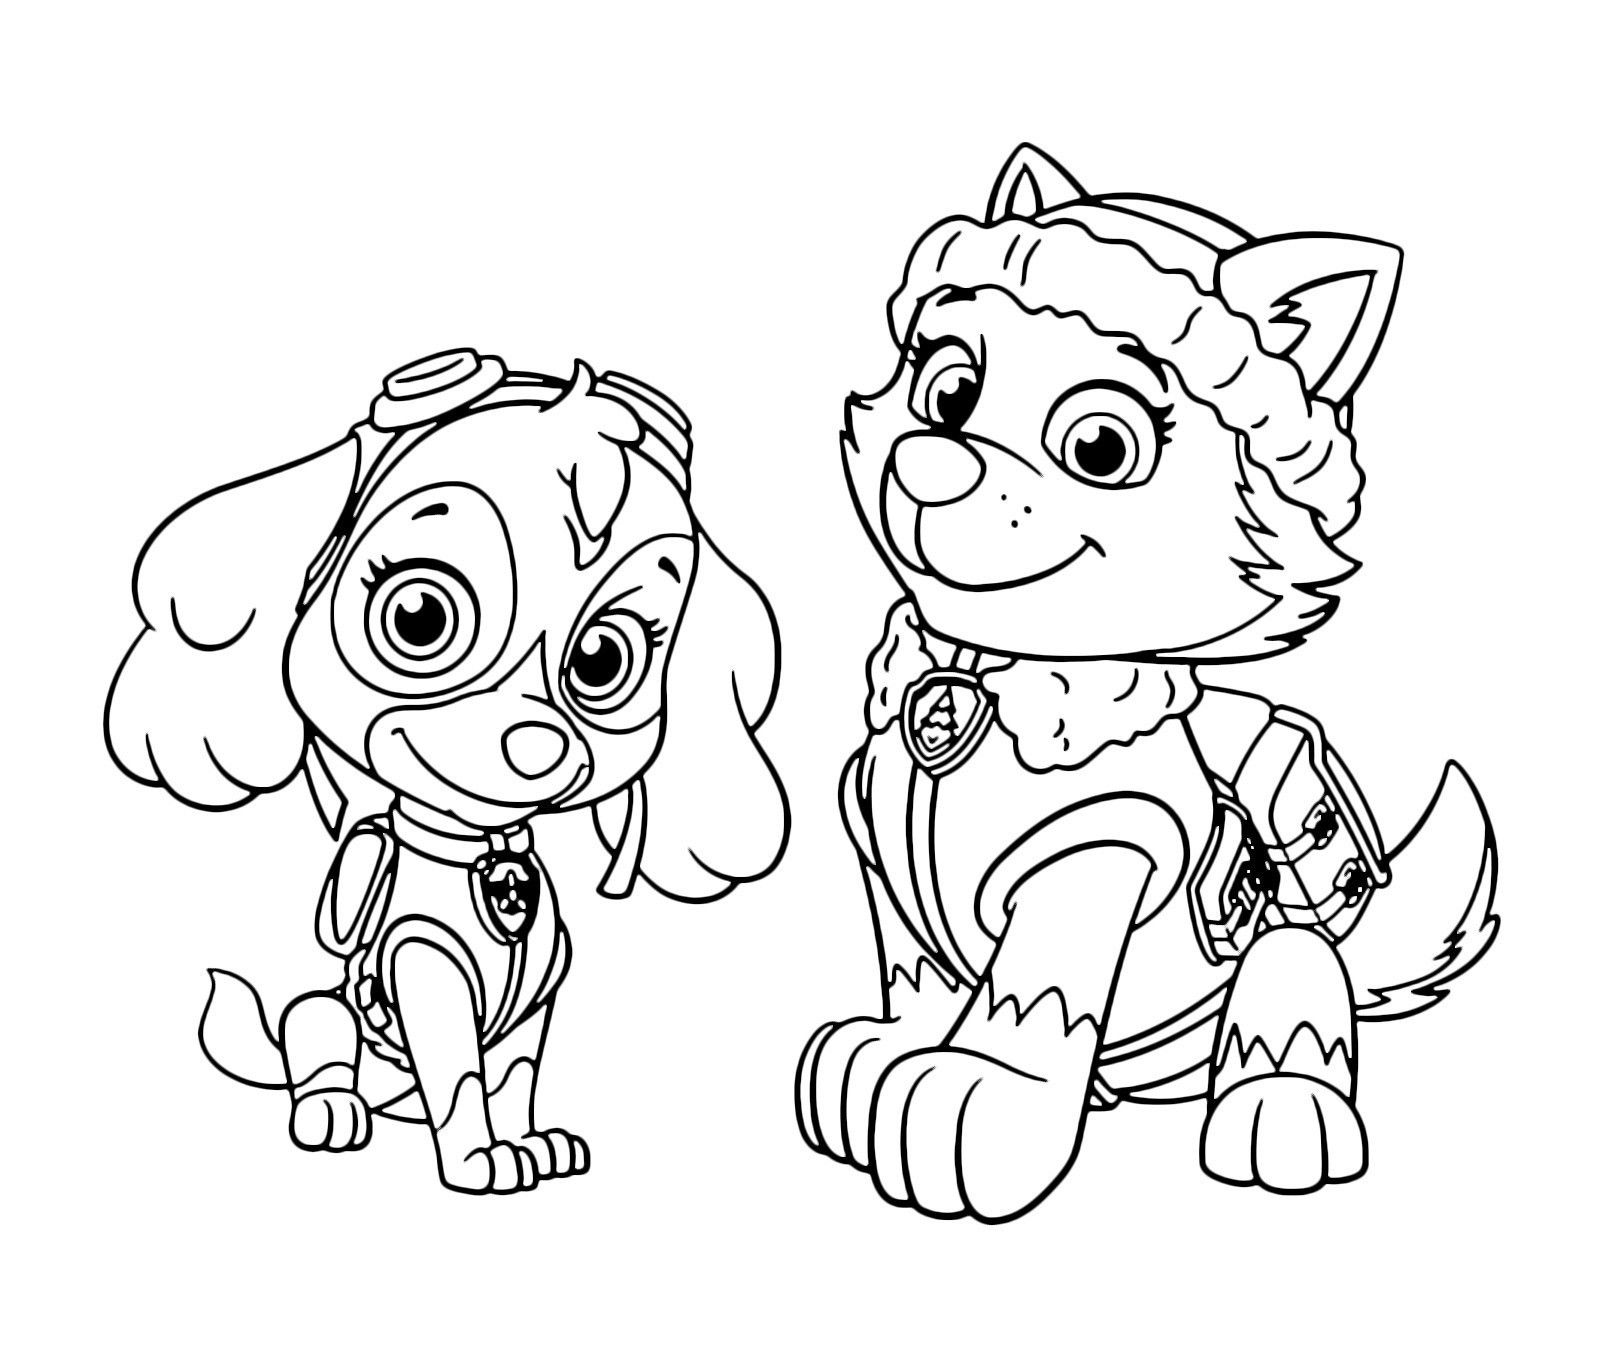 Zuma Coloring Pages New Paw Patrol Rocky Skye And Page Inside Free Paw Patrol Coloring Pages Paw Patrol Coloring Skye Paw